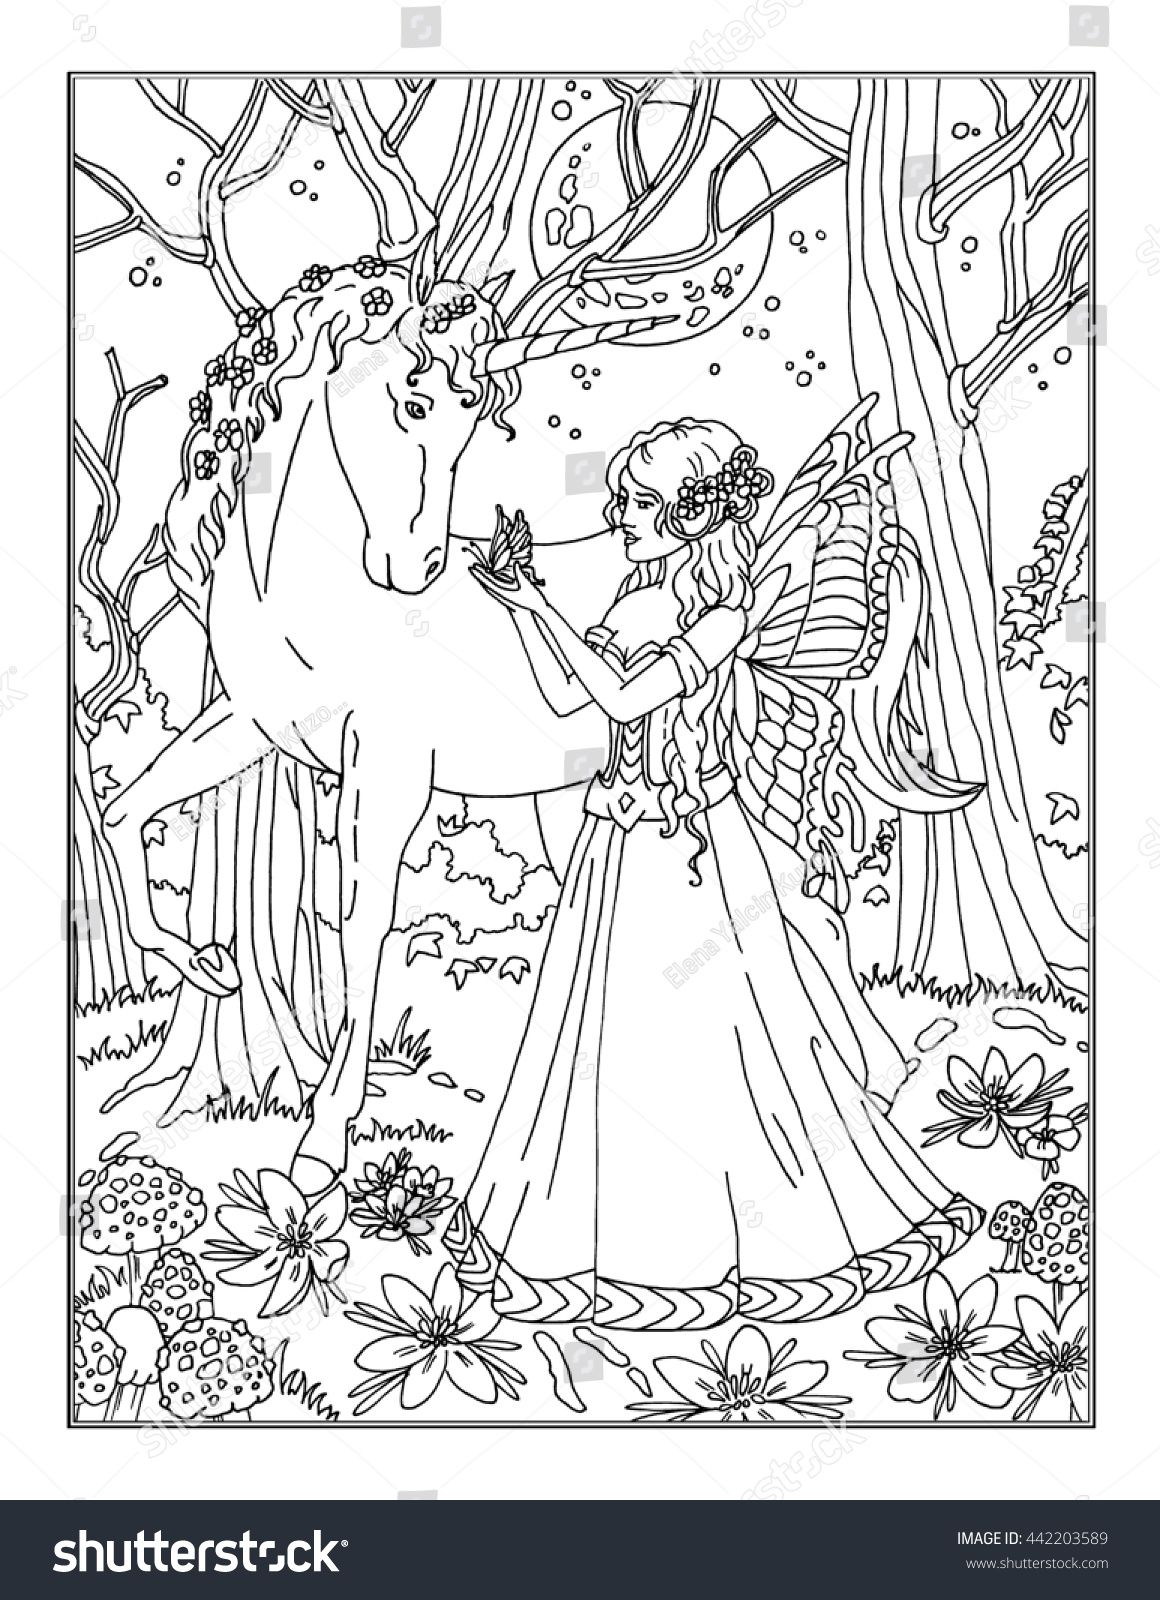 Stock Photo Coloring Page The Enchanted Fairy 442203589 Jpg 1 160 1 600 Pixel Fairy Coloring Pages Coloring Pages Fairy Coloring